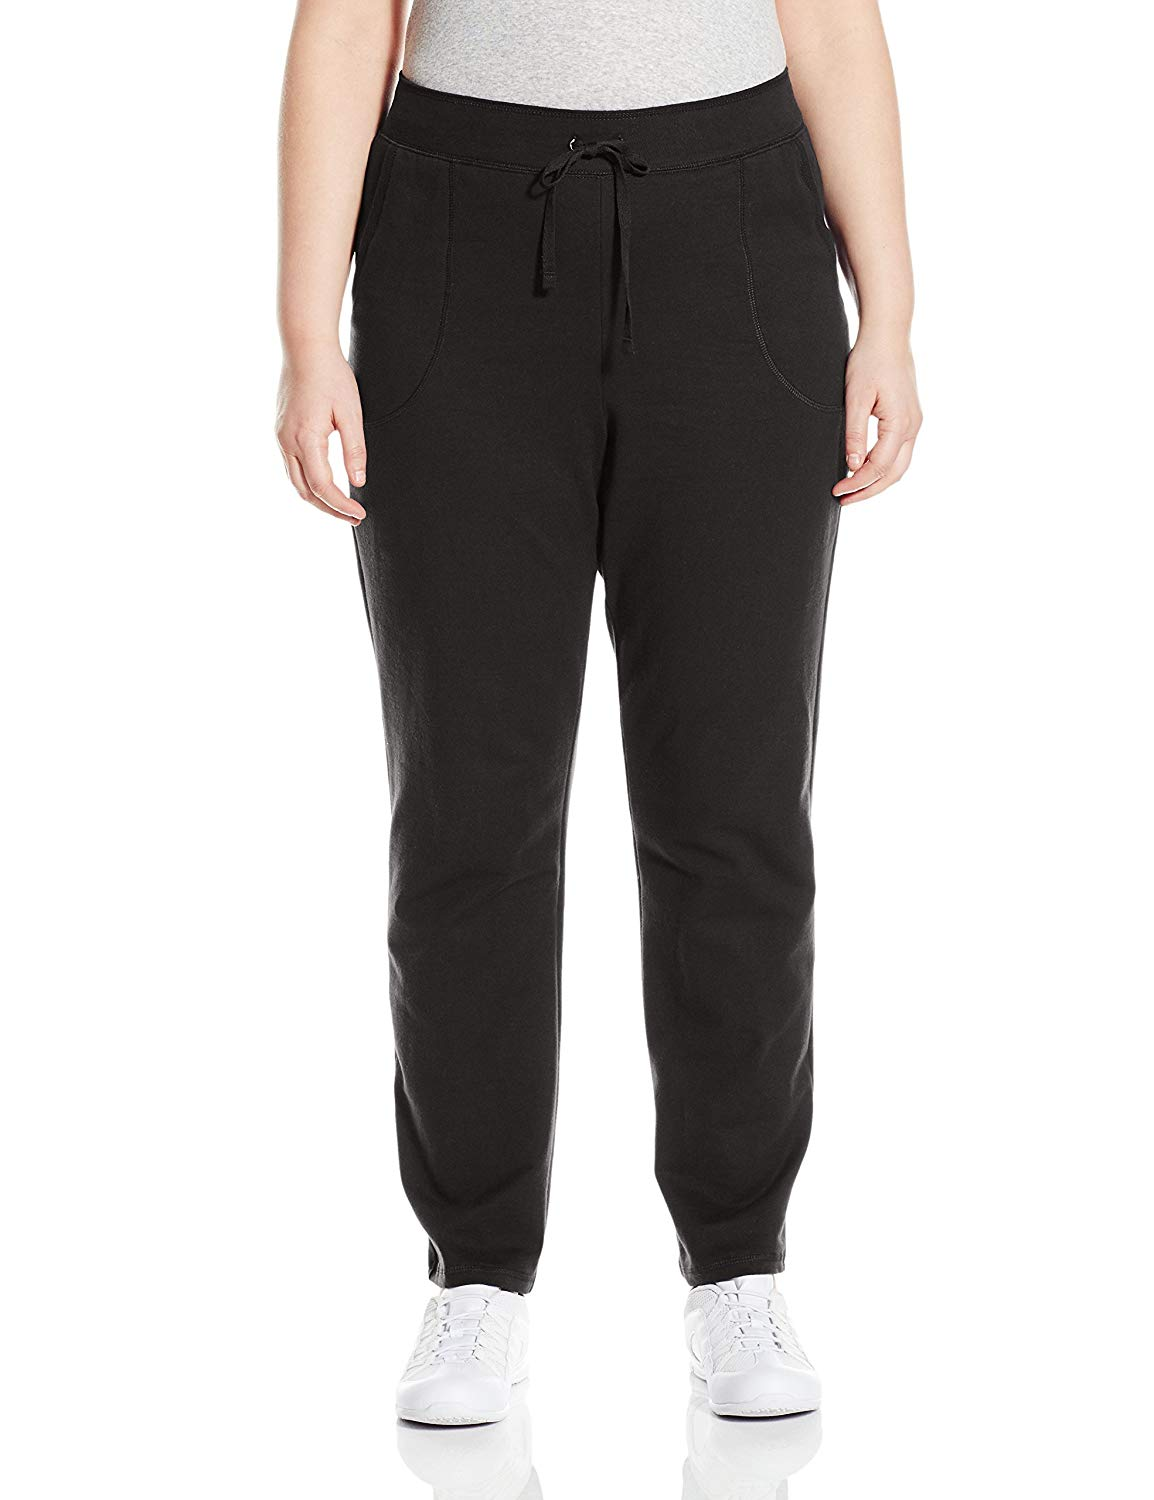 9fee22b8cf Get Quotations · Just My Size Women s Plus French Terry Pant